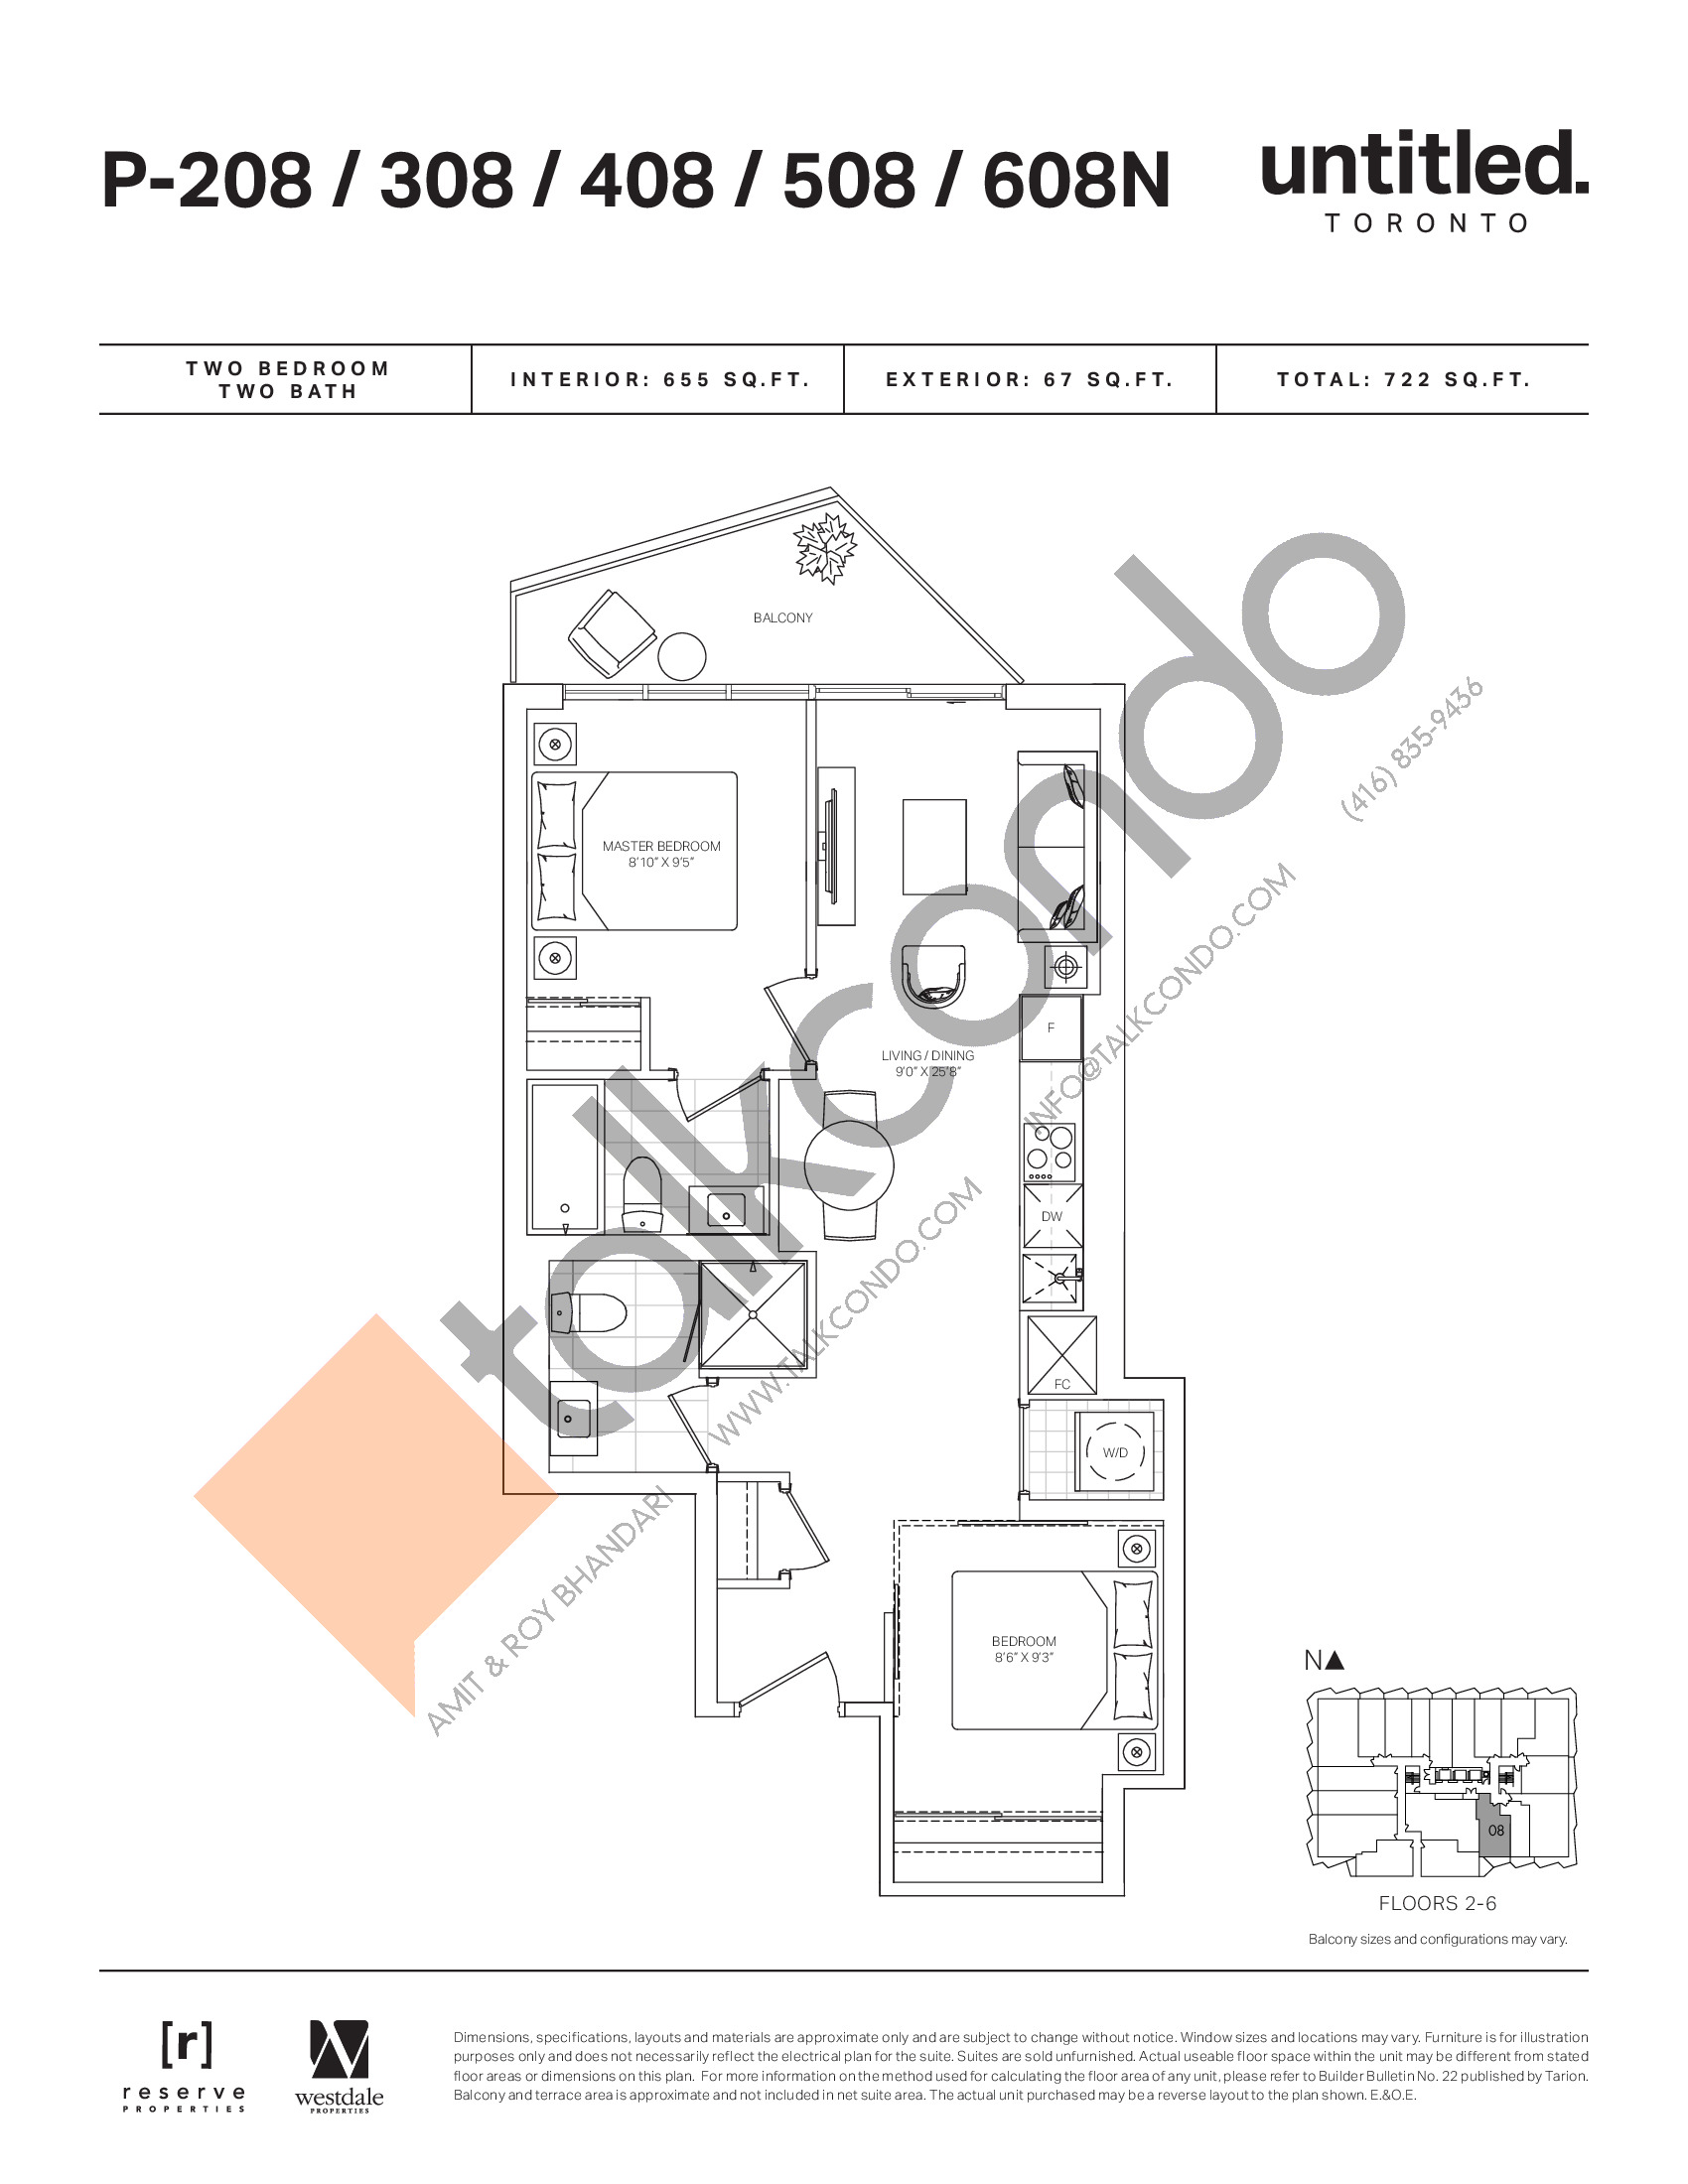 P-208/308/408/508/608N Floor Plan at Untitled North Tower Condos - 655 sq.ft